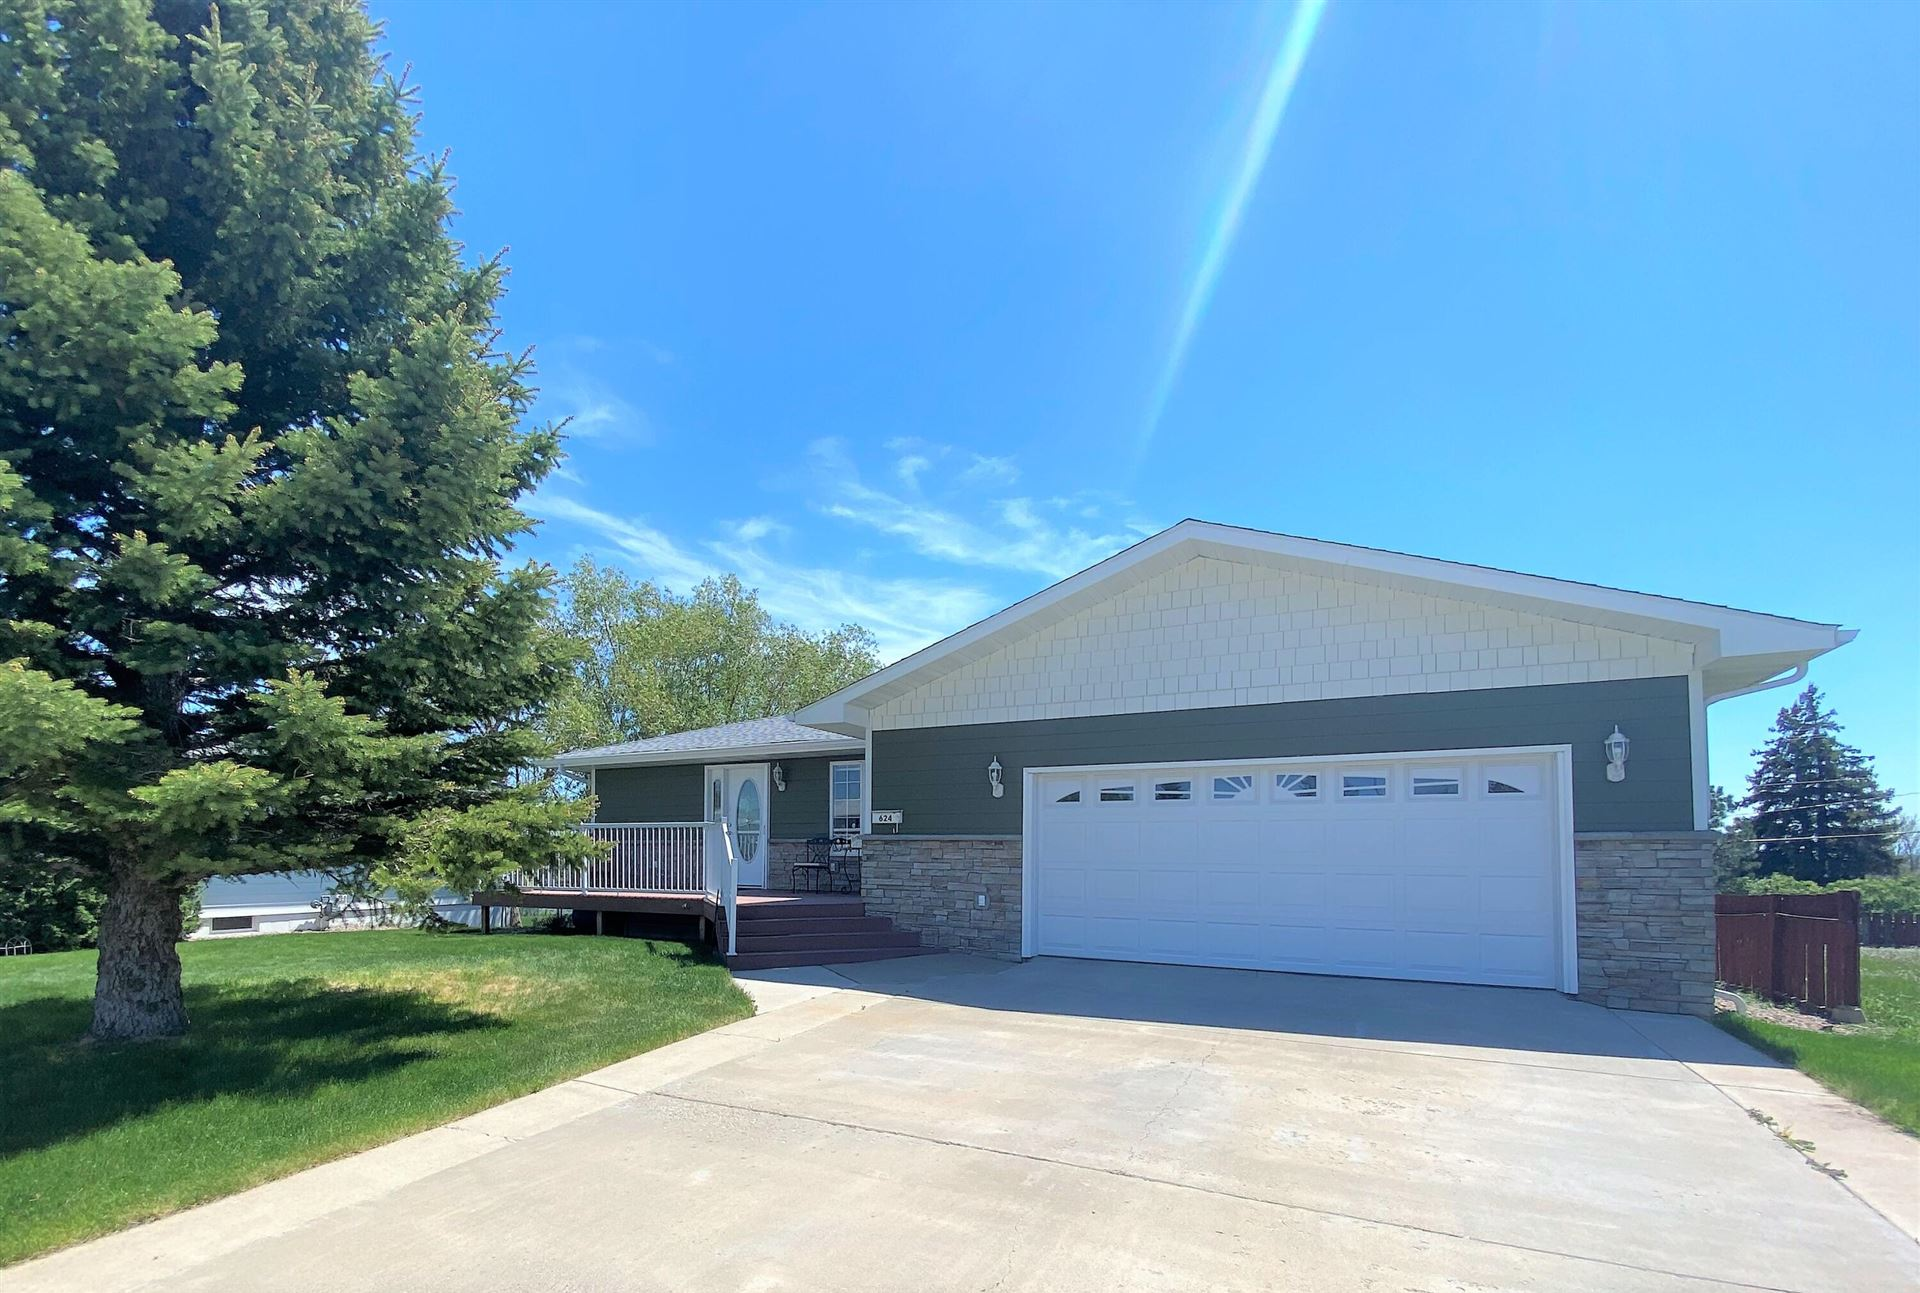 Photo for 624 33rd Avenue North East, Great Falls, MT 59404 (MLS # 22108733)